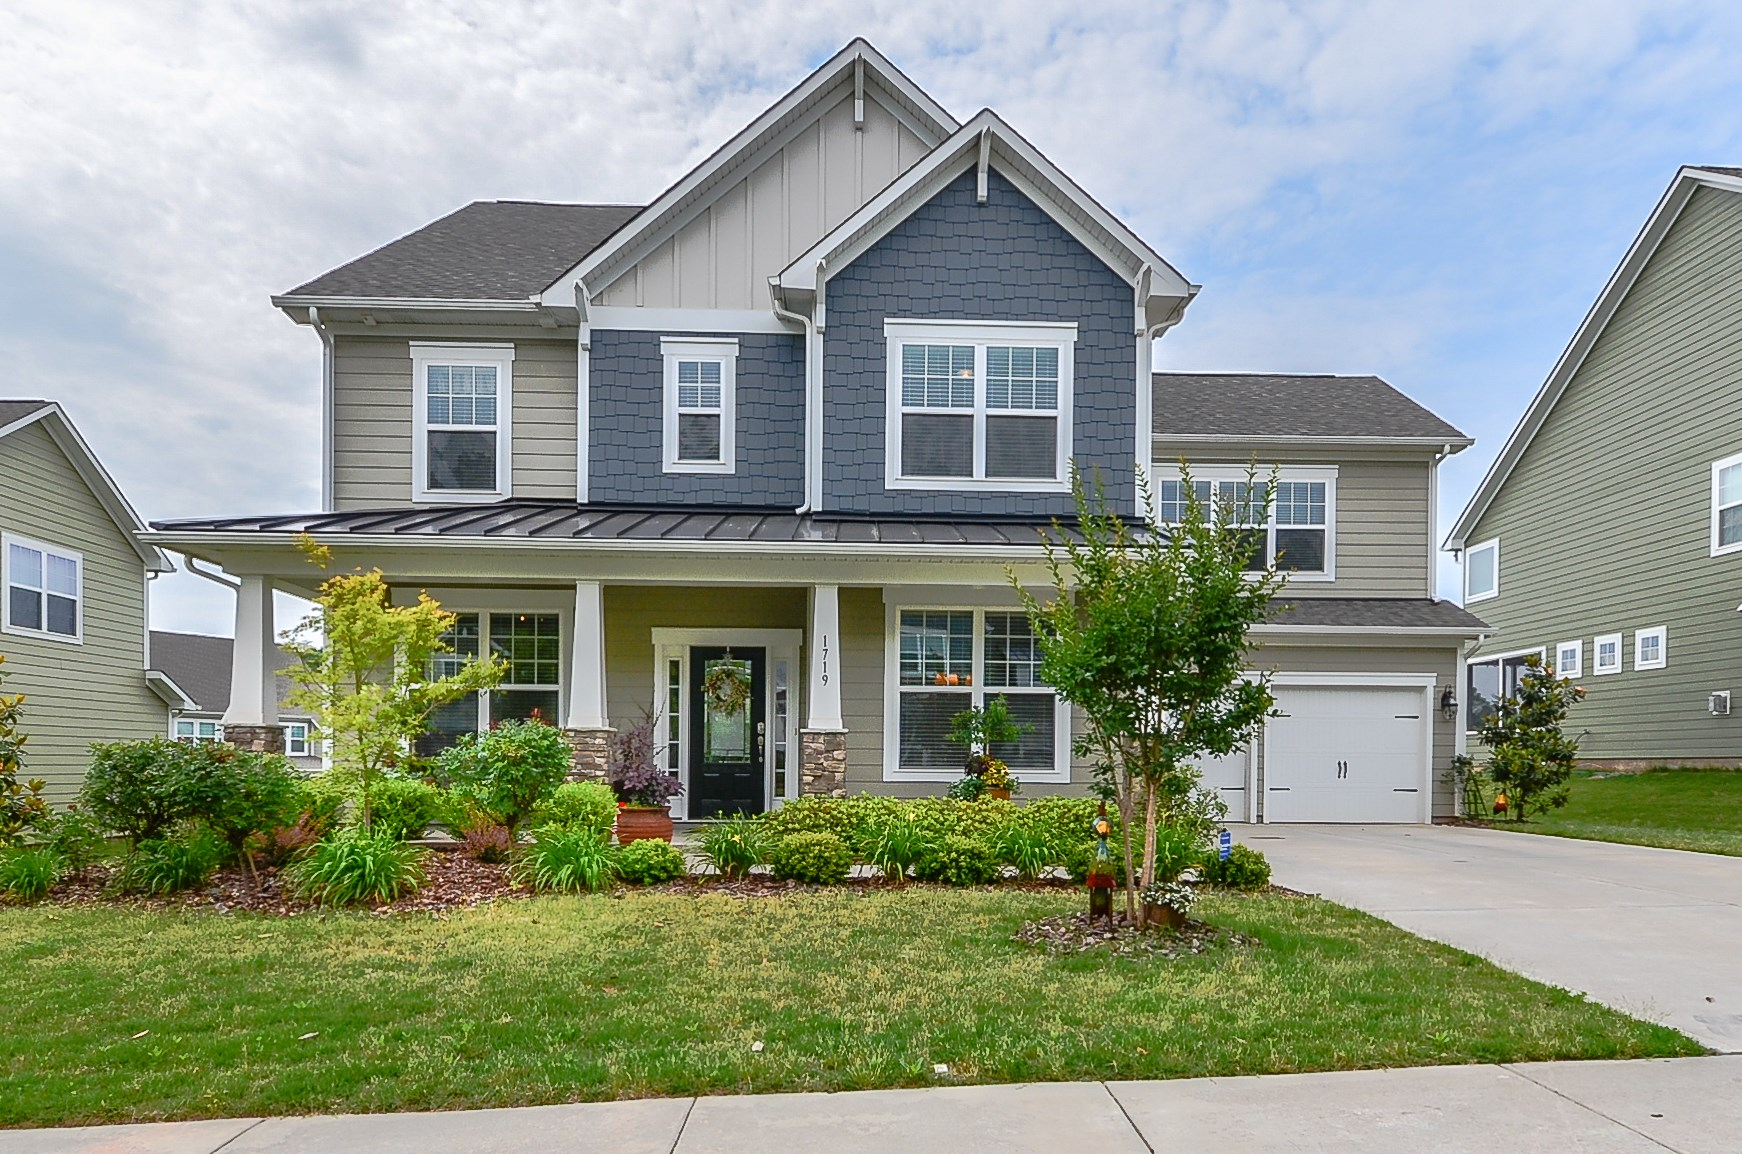 For Sale In Springfield Fort Mill Sc 1719 Fairntosh Dr